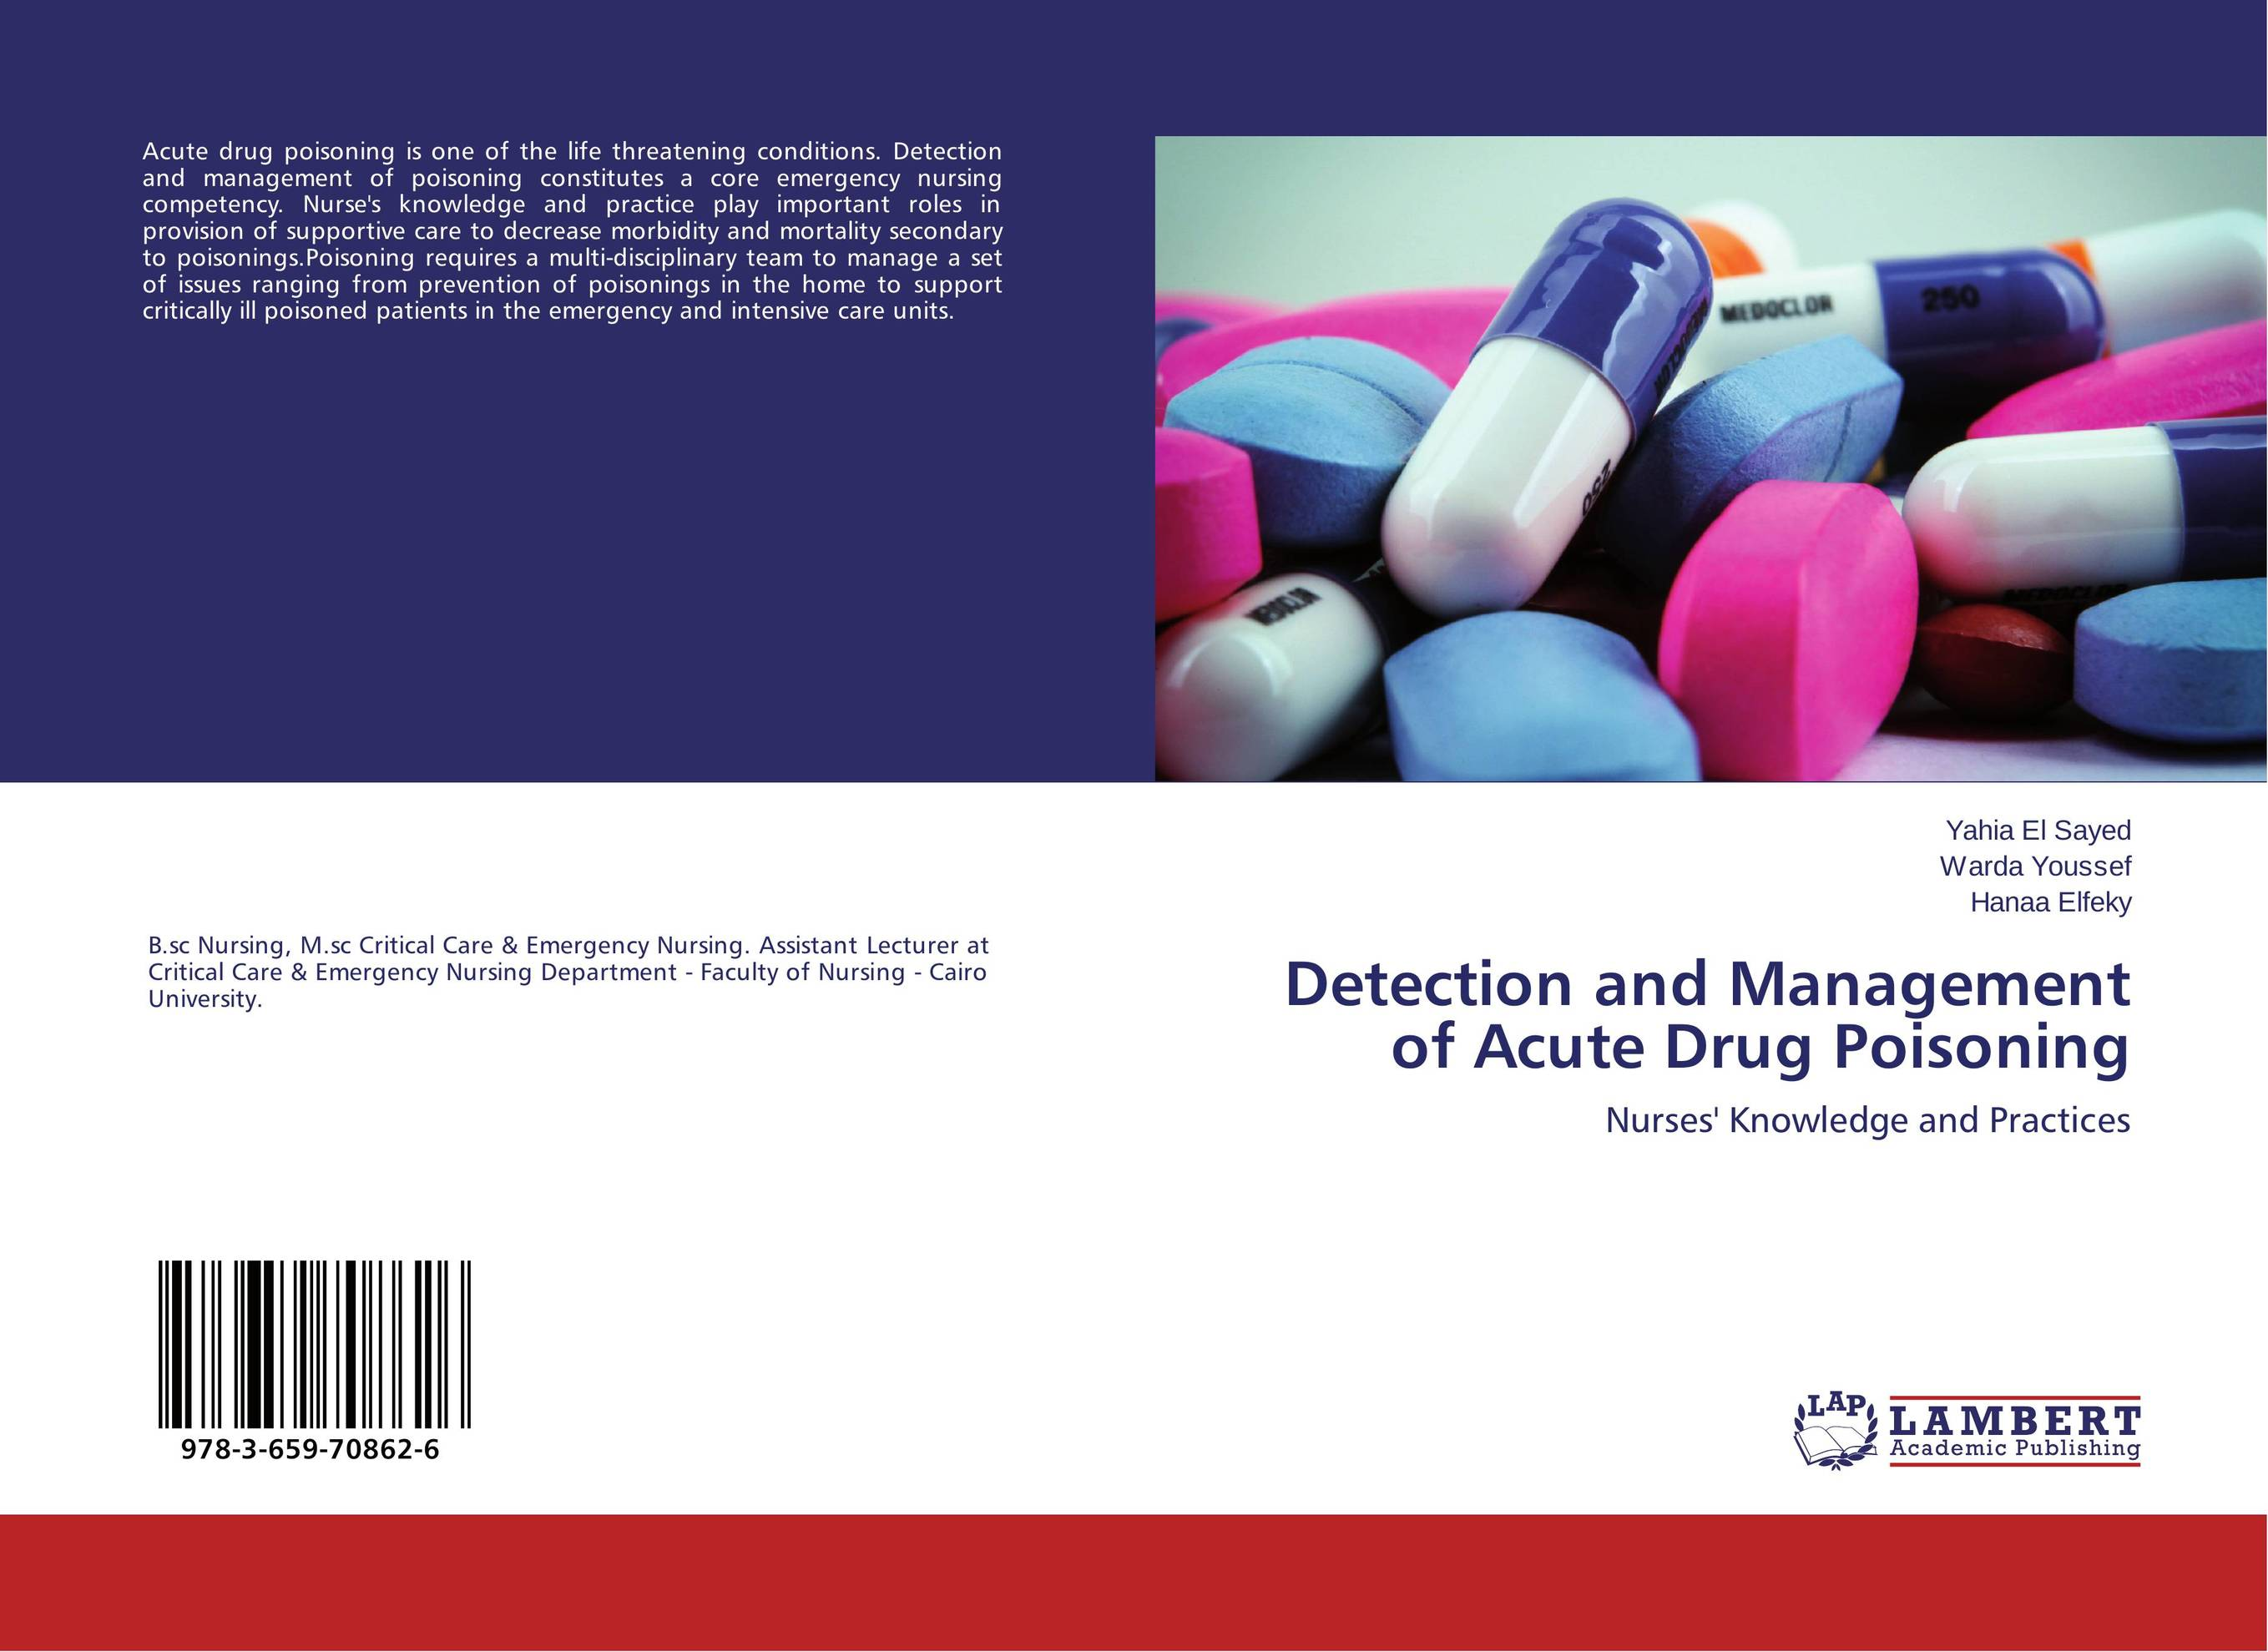 Detection and Management of Acute Drug Poisoning tpx dc4c2260 color copier toner powder for xerox dc iv dc v apeosport c3375 c4470 c4475 c5570 c5575 1kg bag color free fedex